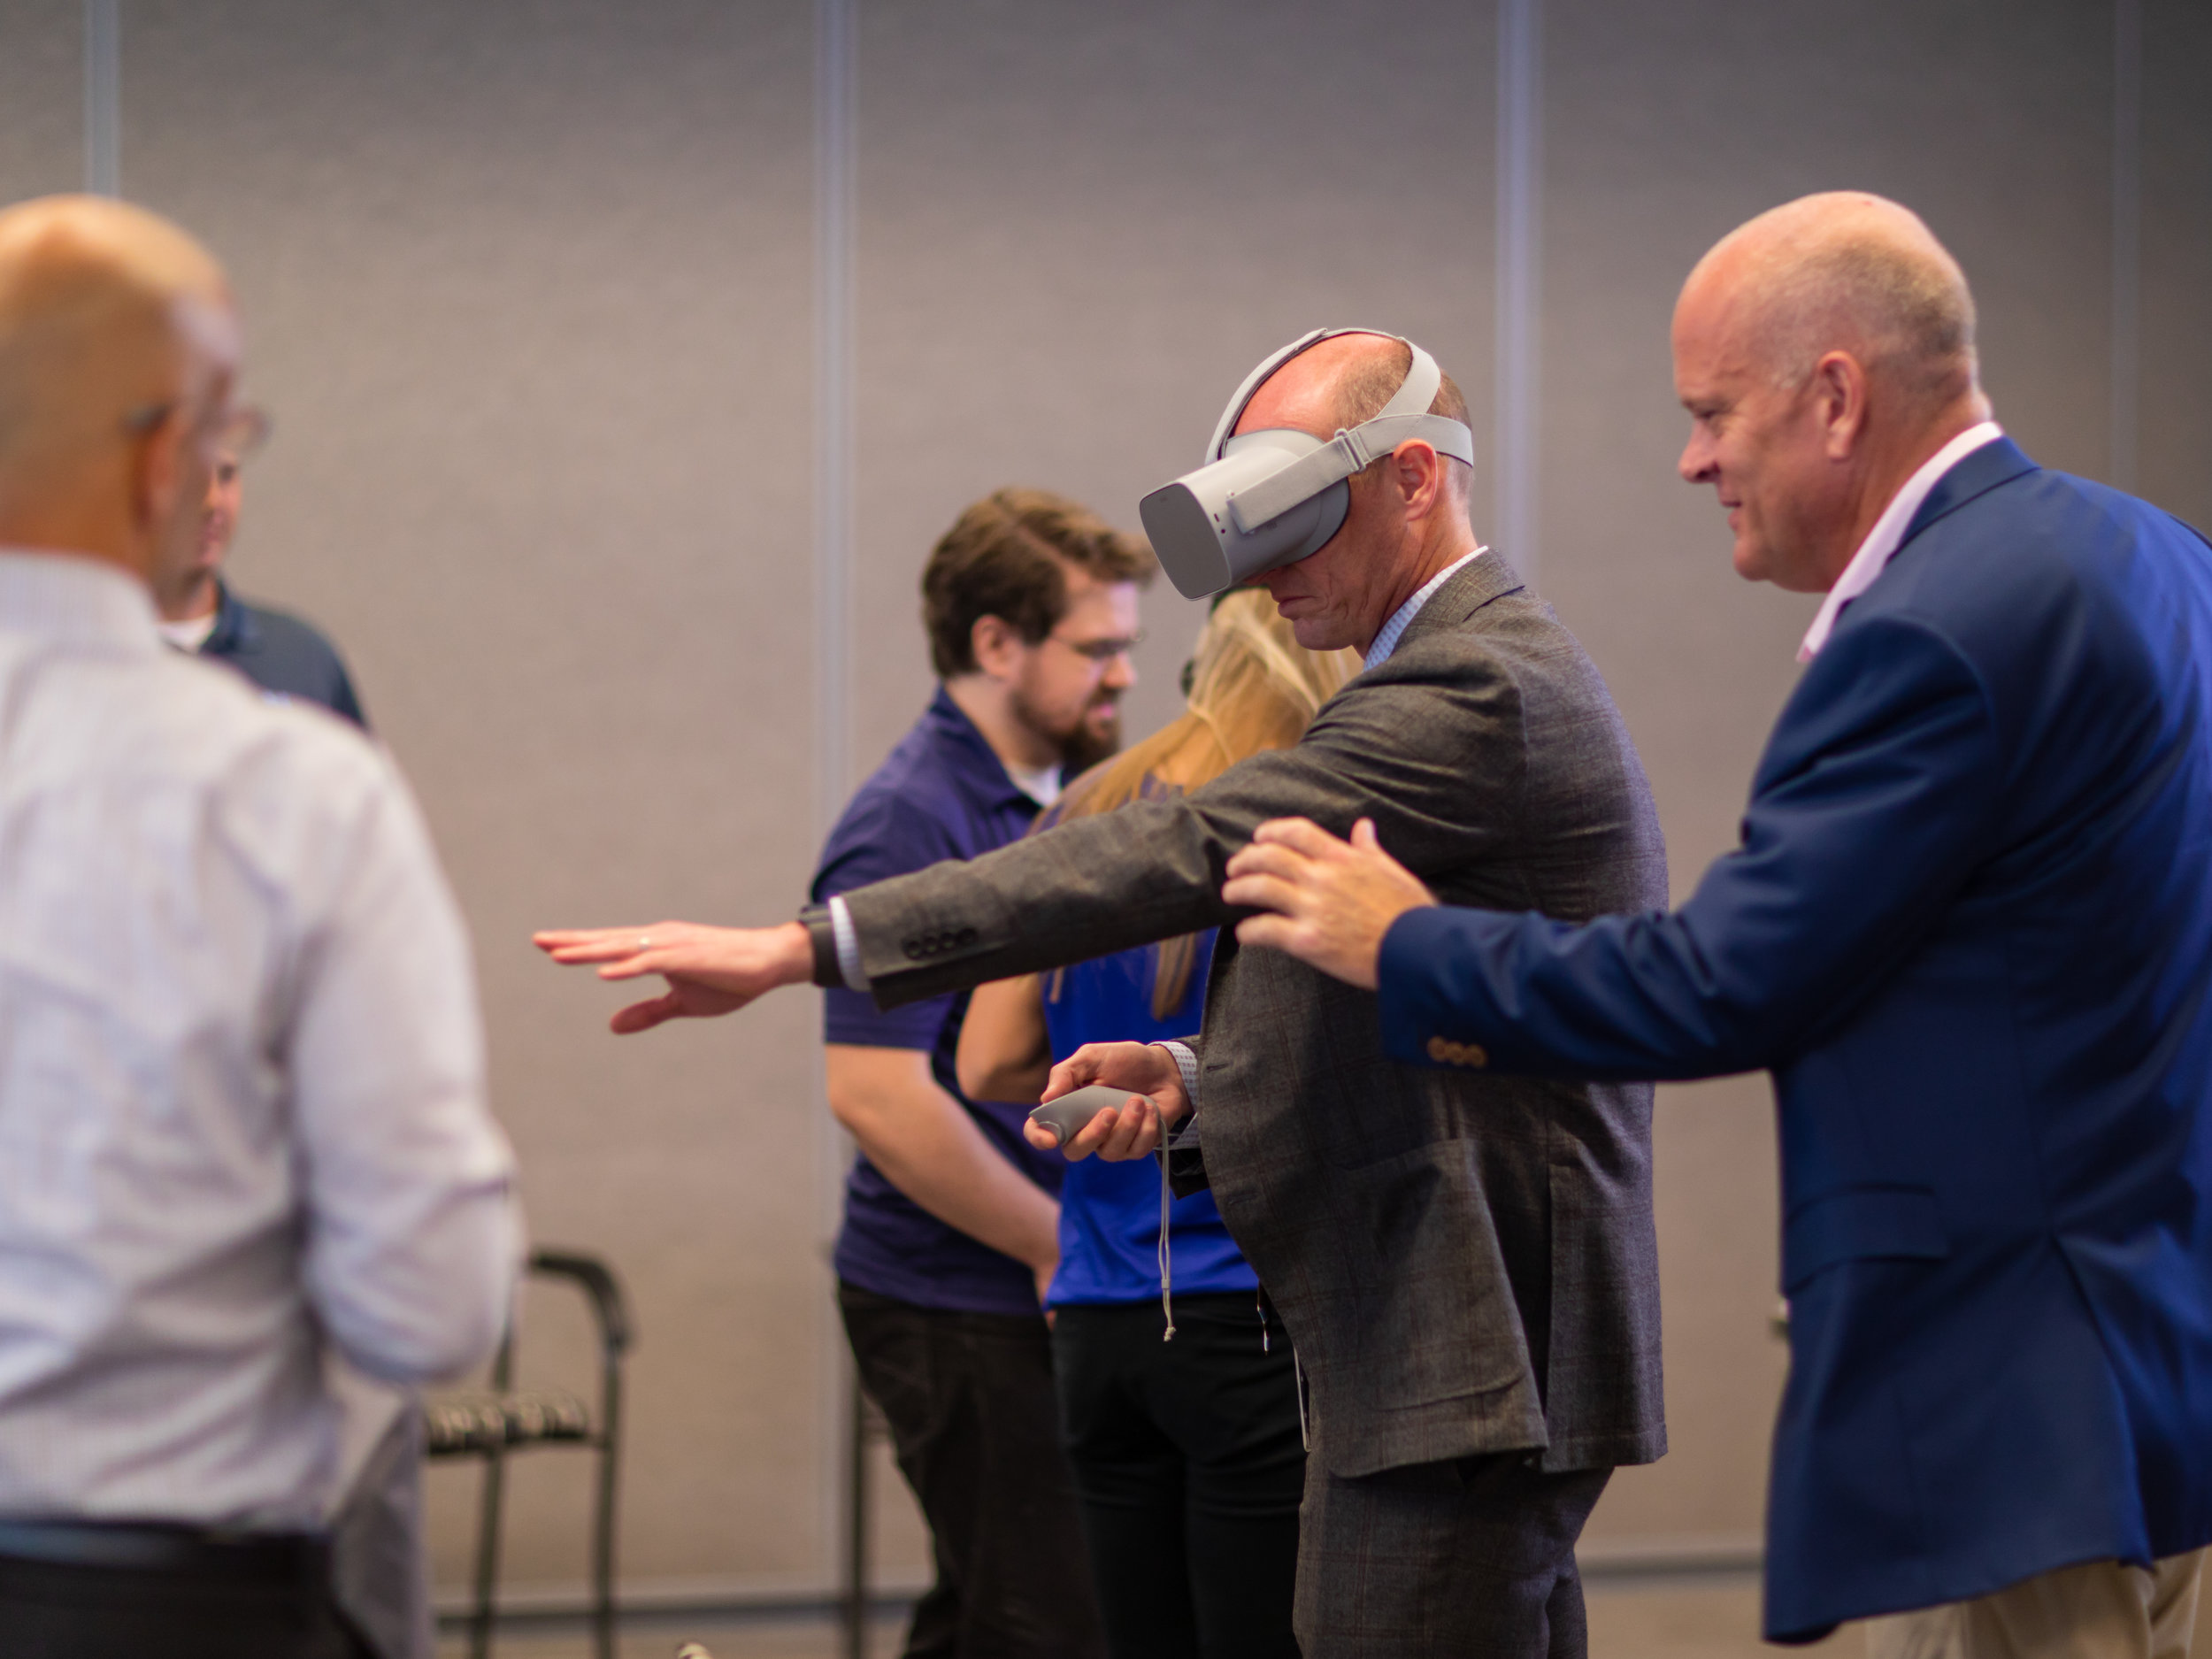 Testing VR at Innovation Lab Open House